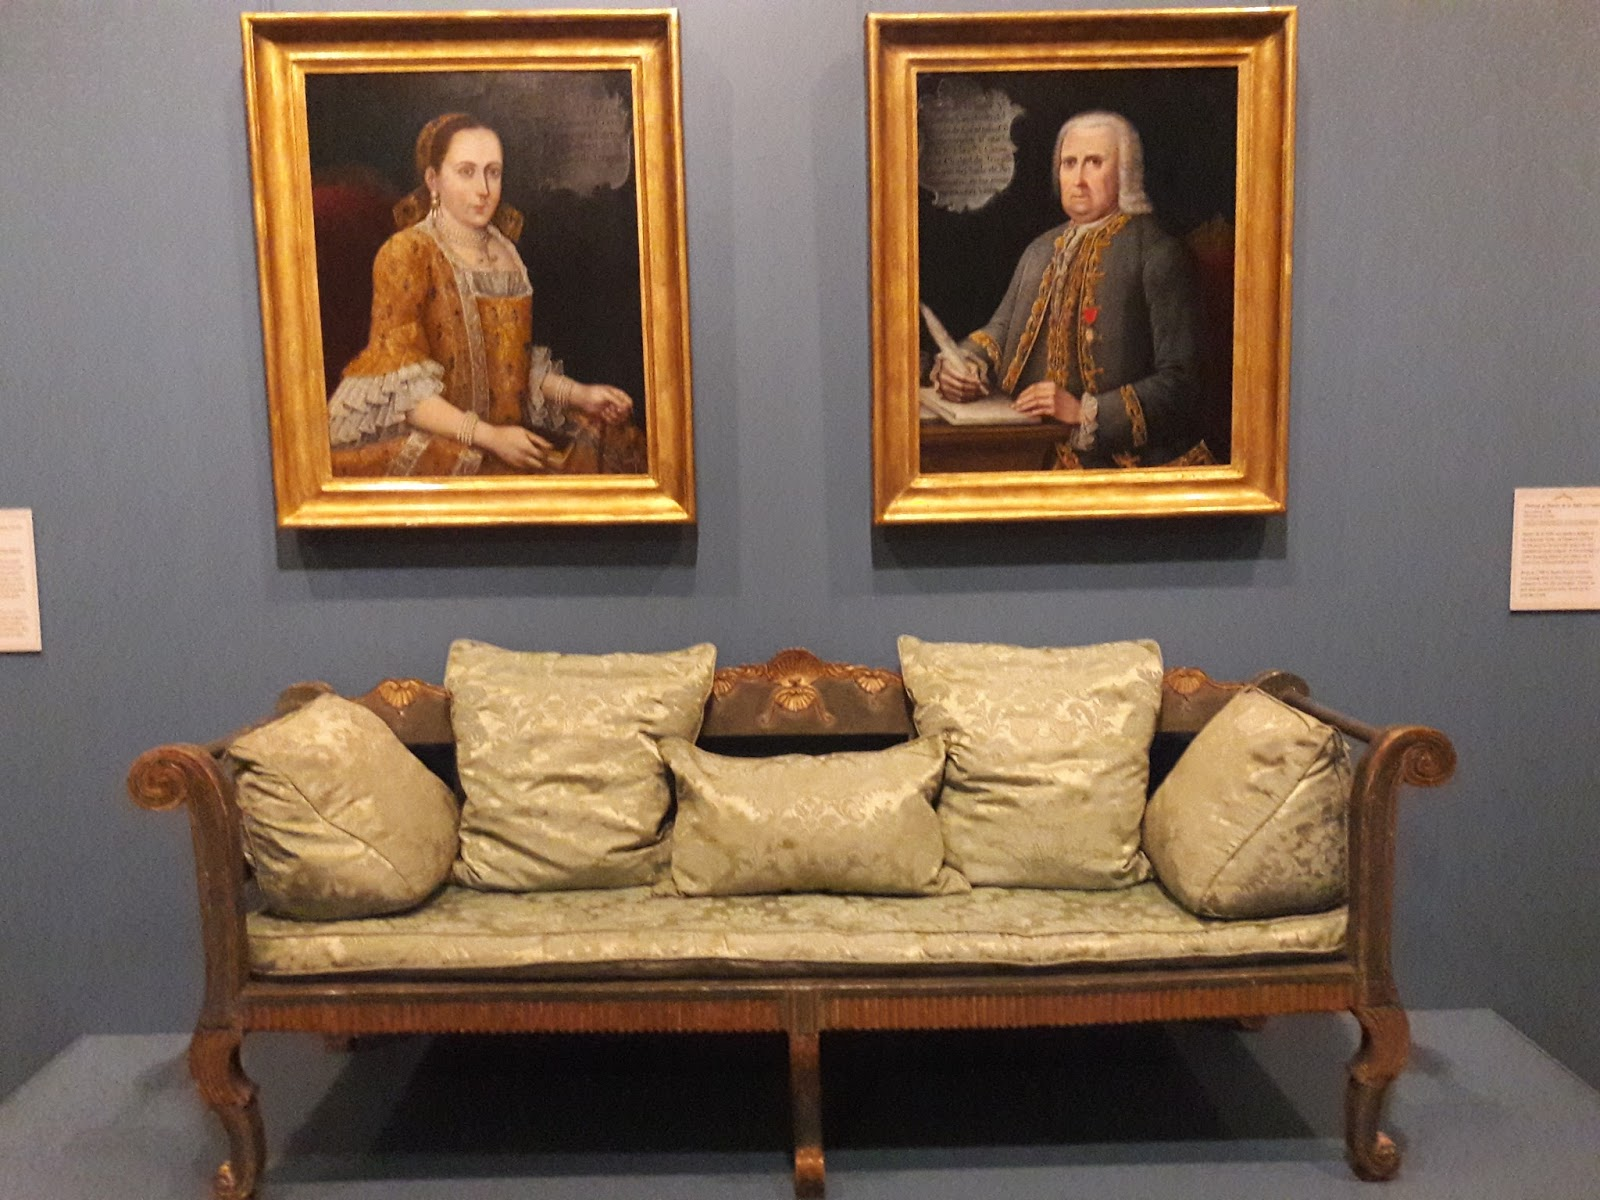 Unlike The Green Chaise Longue We Saw Earlier, Whose Silk Upholstery Was A  Modern Reproduction, This One Still Has Its